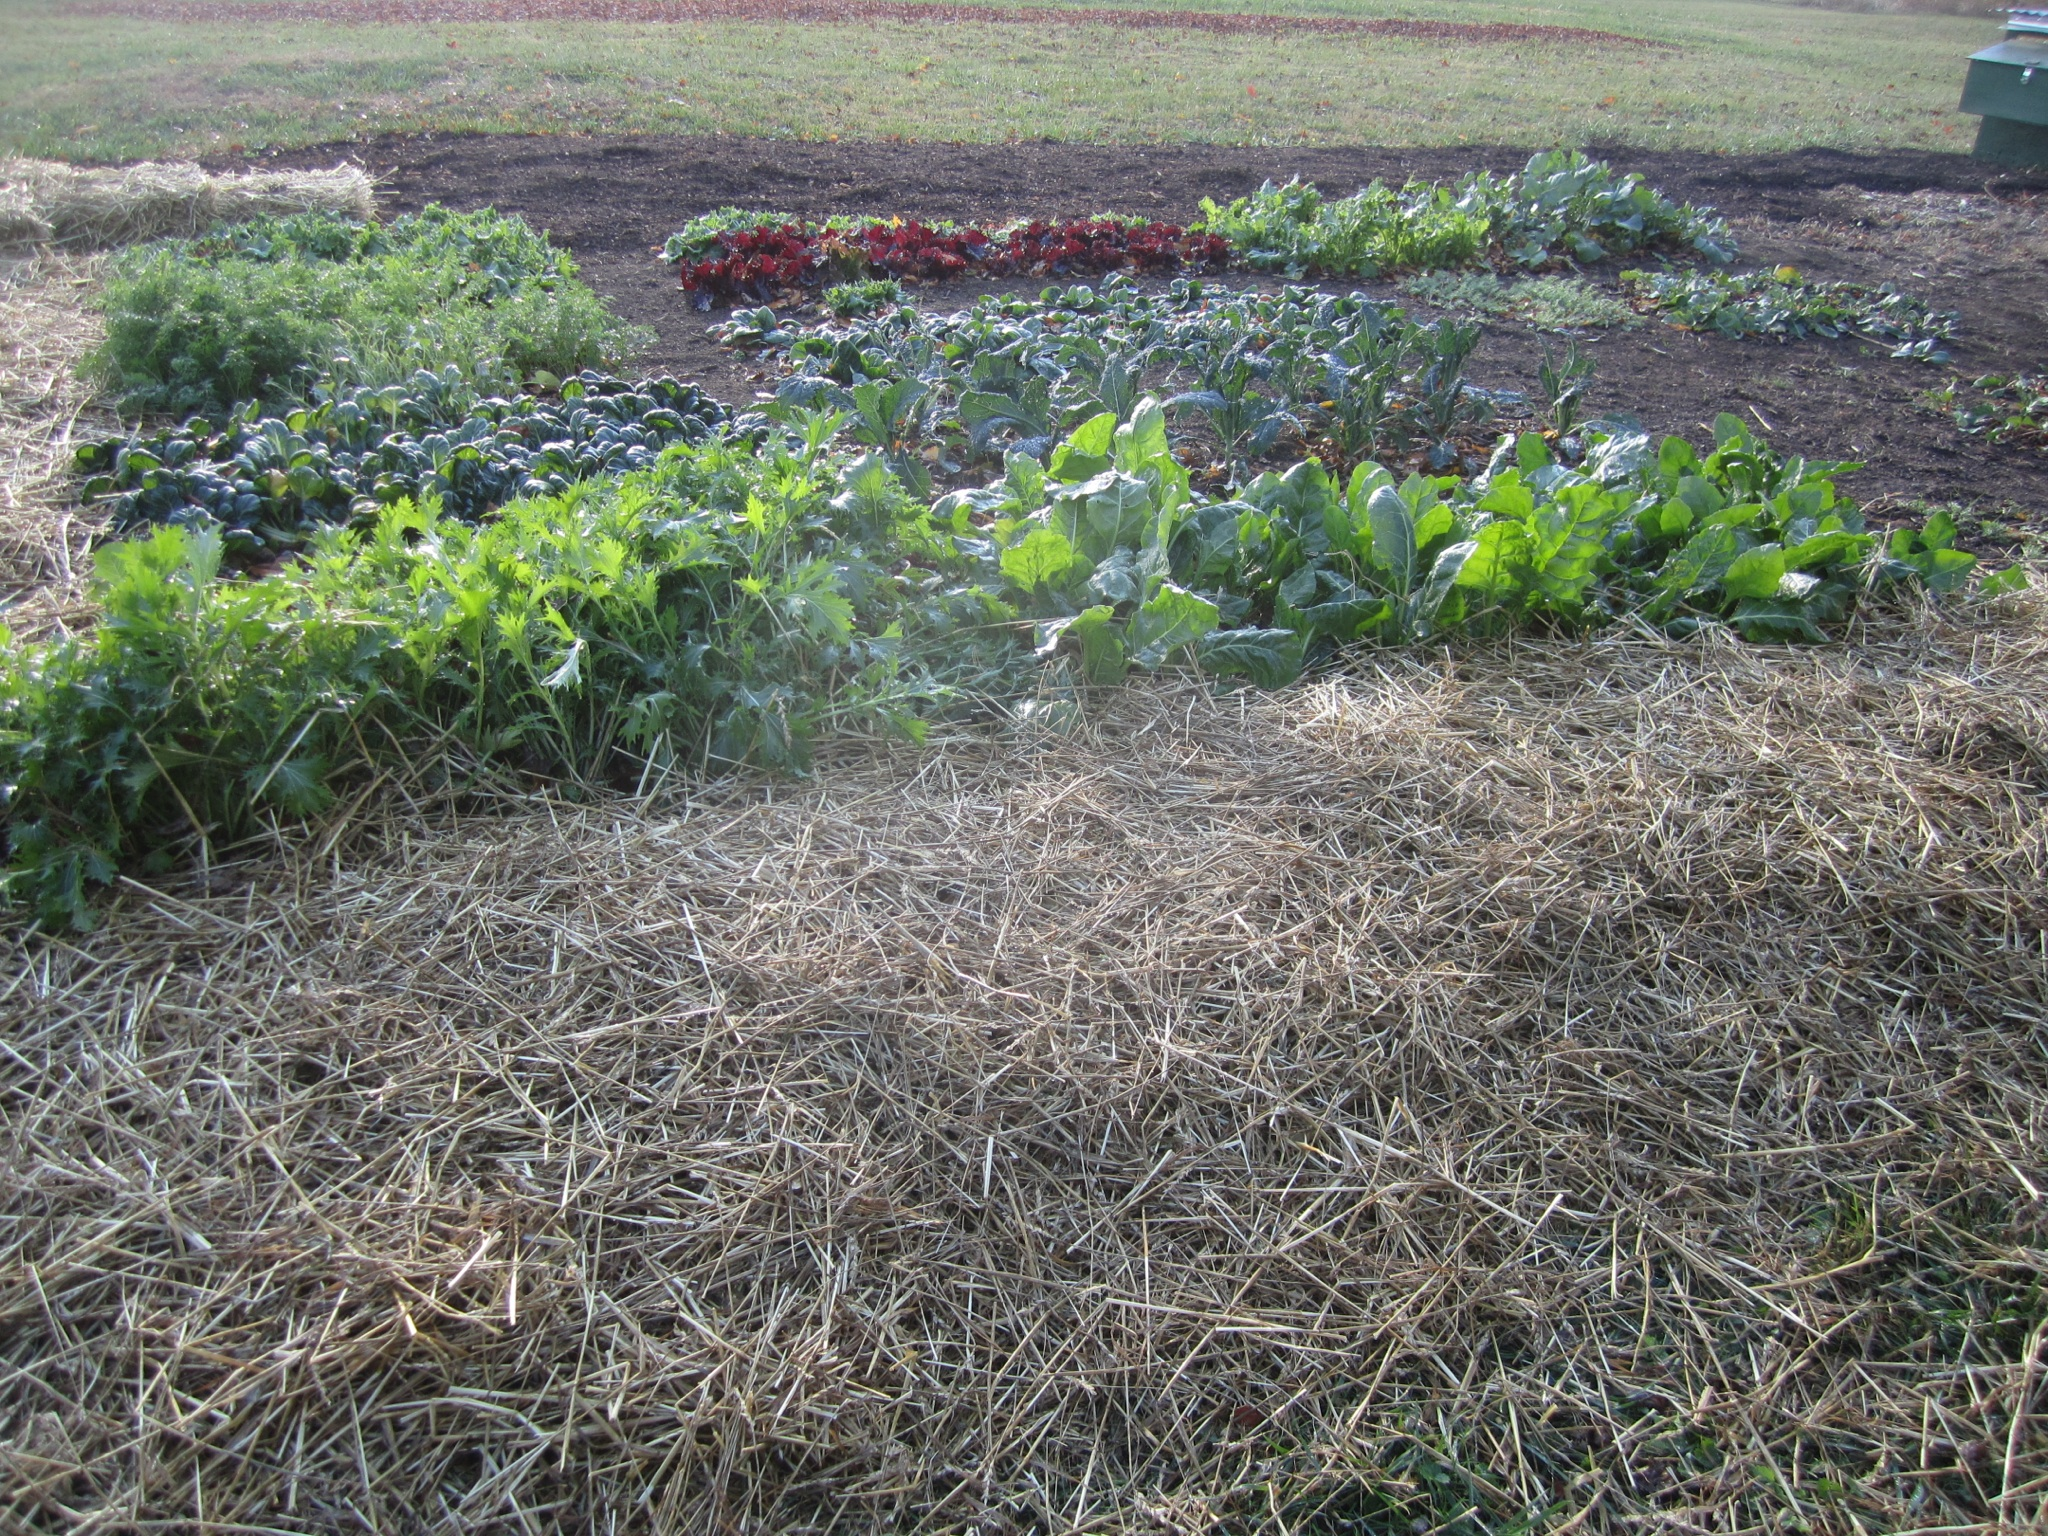 The freshly planted garlic has been mulched and is now ready to ride out the winter months.